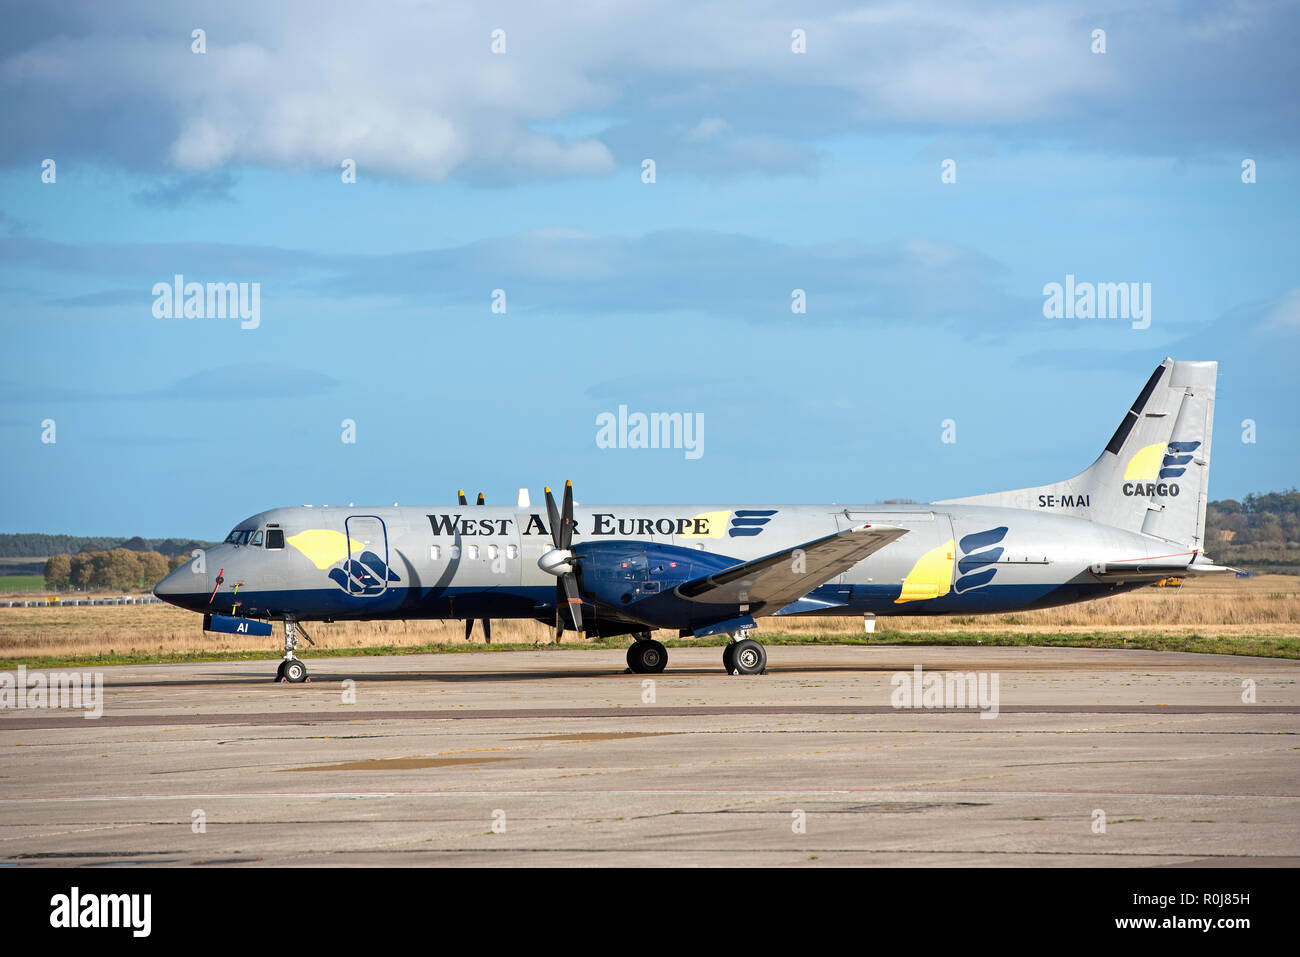 Swedish West Air Europe Freighter aircraft SE-MAI on lease, parked at Inverness Dalcross airports the Scottish Highlands. Stock Photo